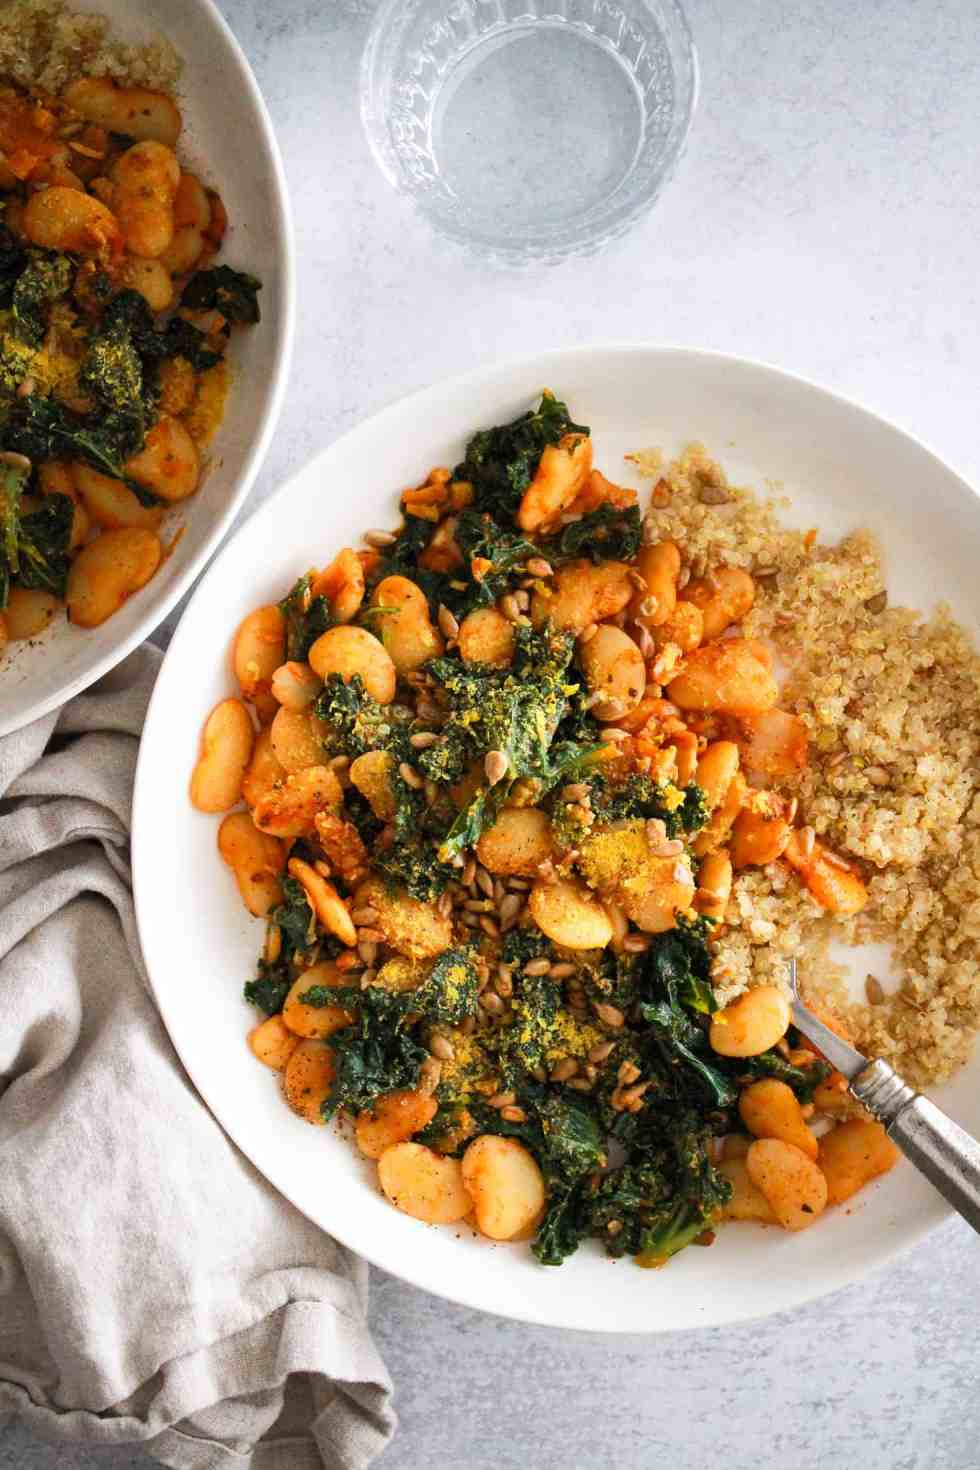 Image of butter beans recipe in white bowls with a water glass and linen napkin.